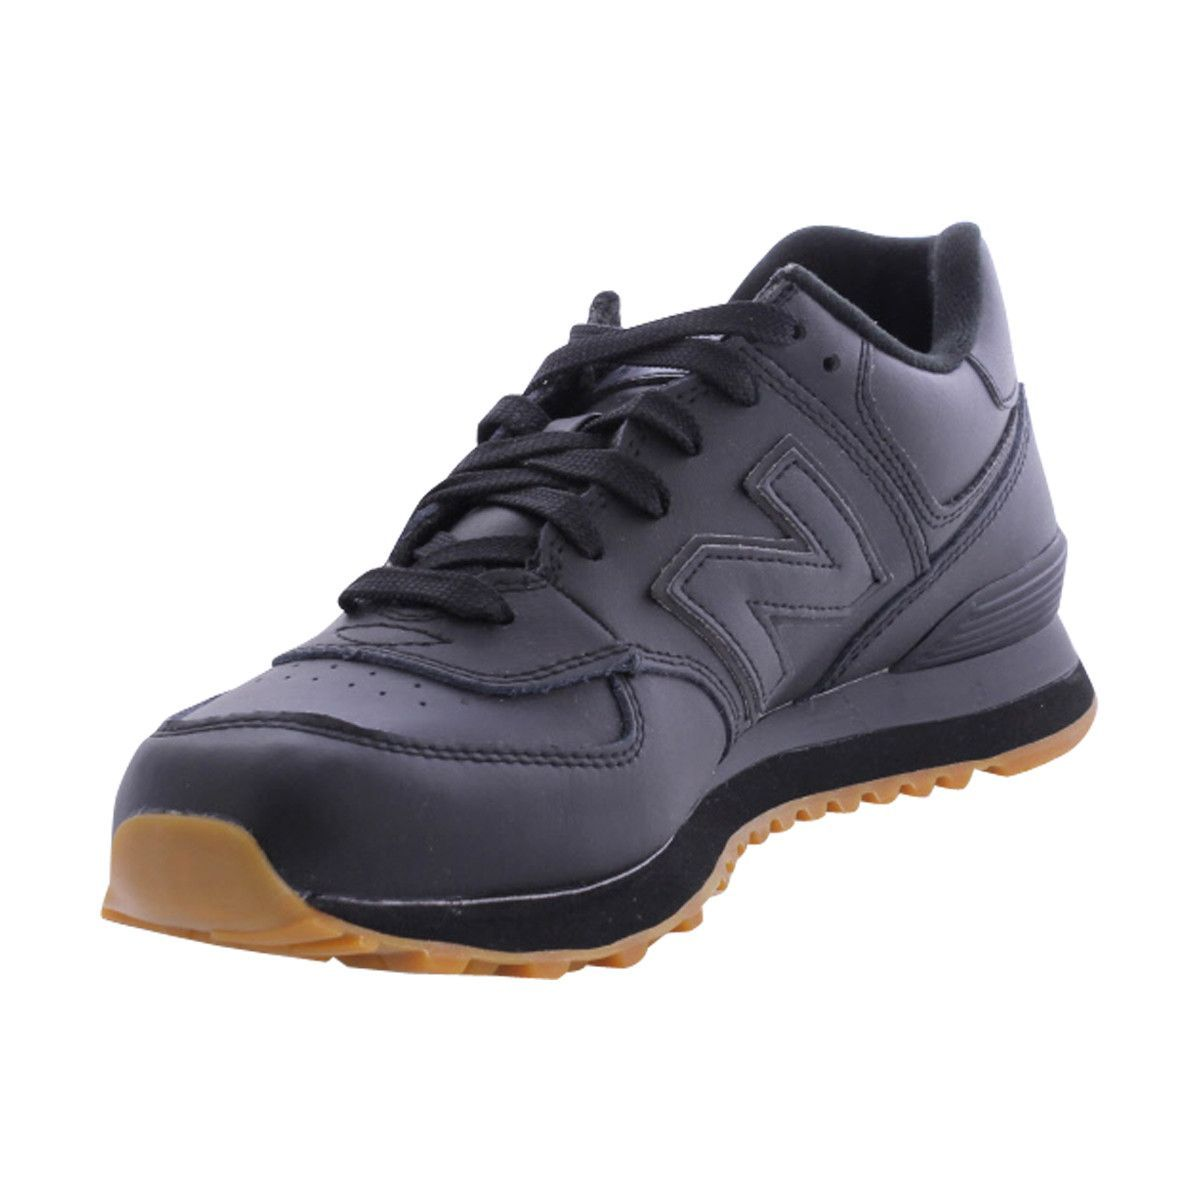 b5a8225d57e0 New Balance - Men s Leather Collection Sneakers - Black